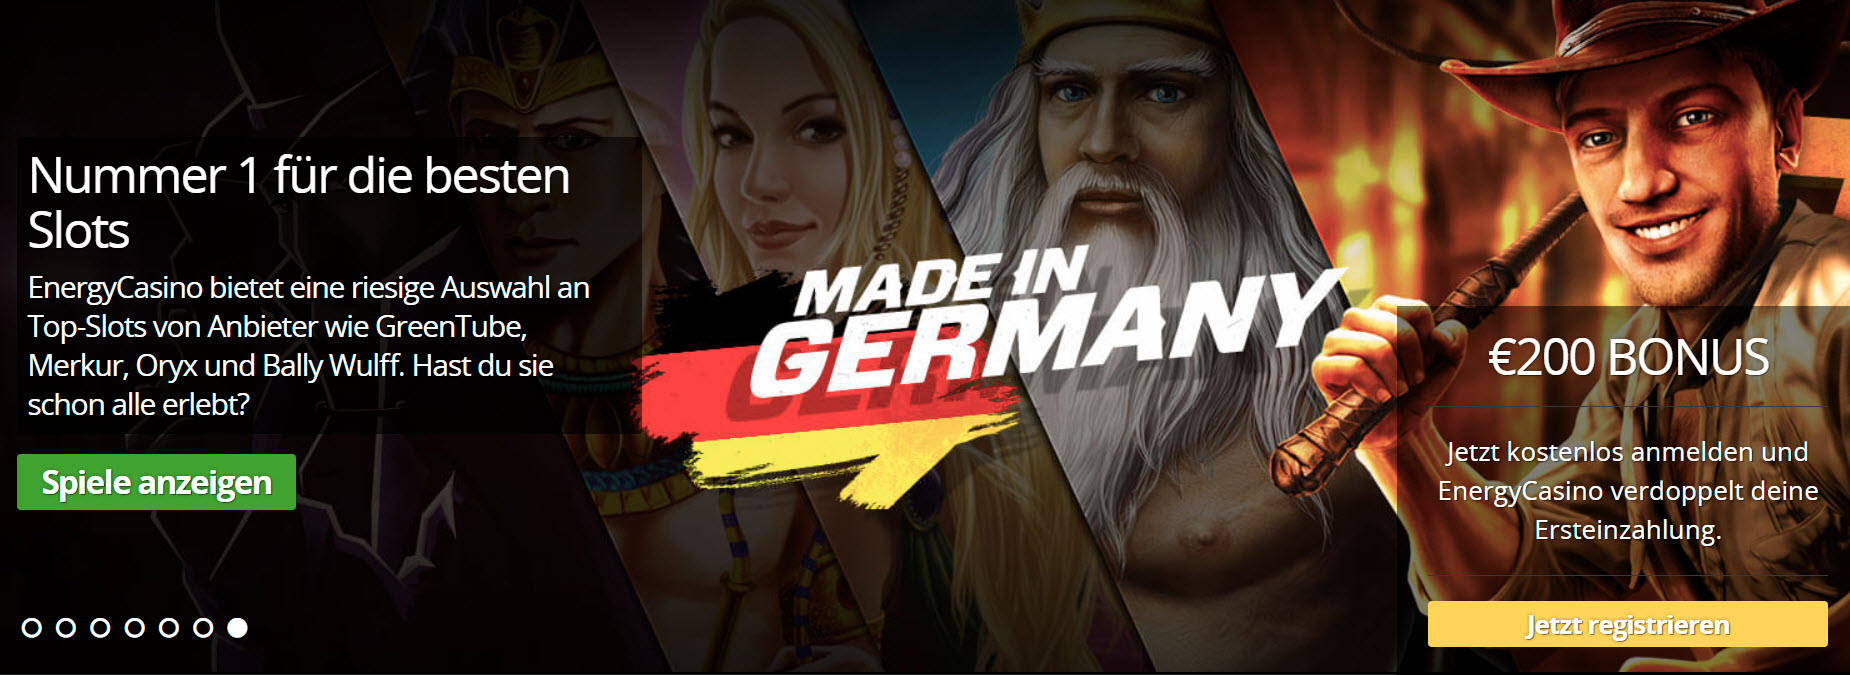 Made in Germany als betes Attribut für eine gute Stargames Alternative